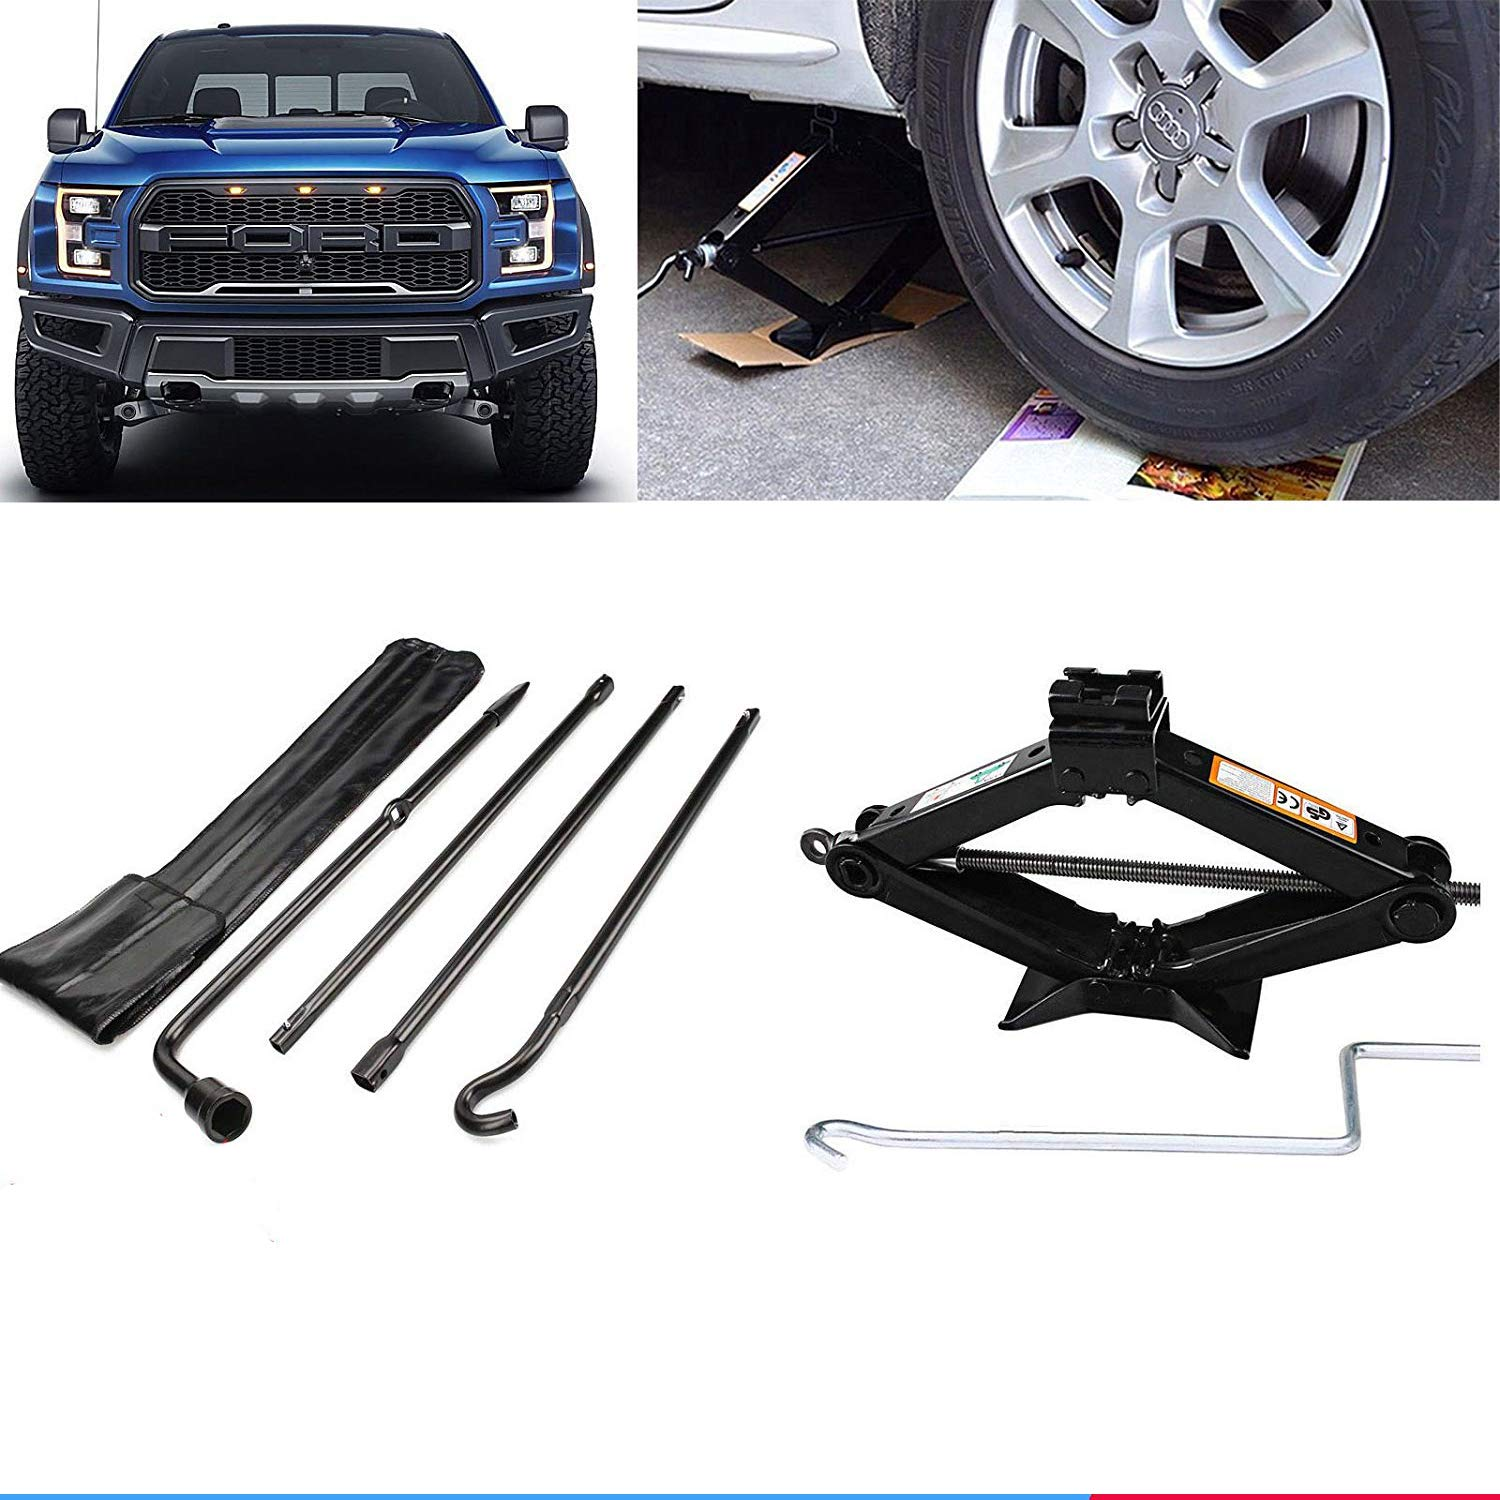 Autobaba For 2004 2014 Ford F 150 Spare Tire Tool Kit And 2 Ton Scissor Jack 2 Year Warranty Us Stock